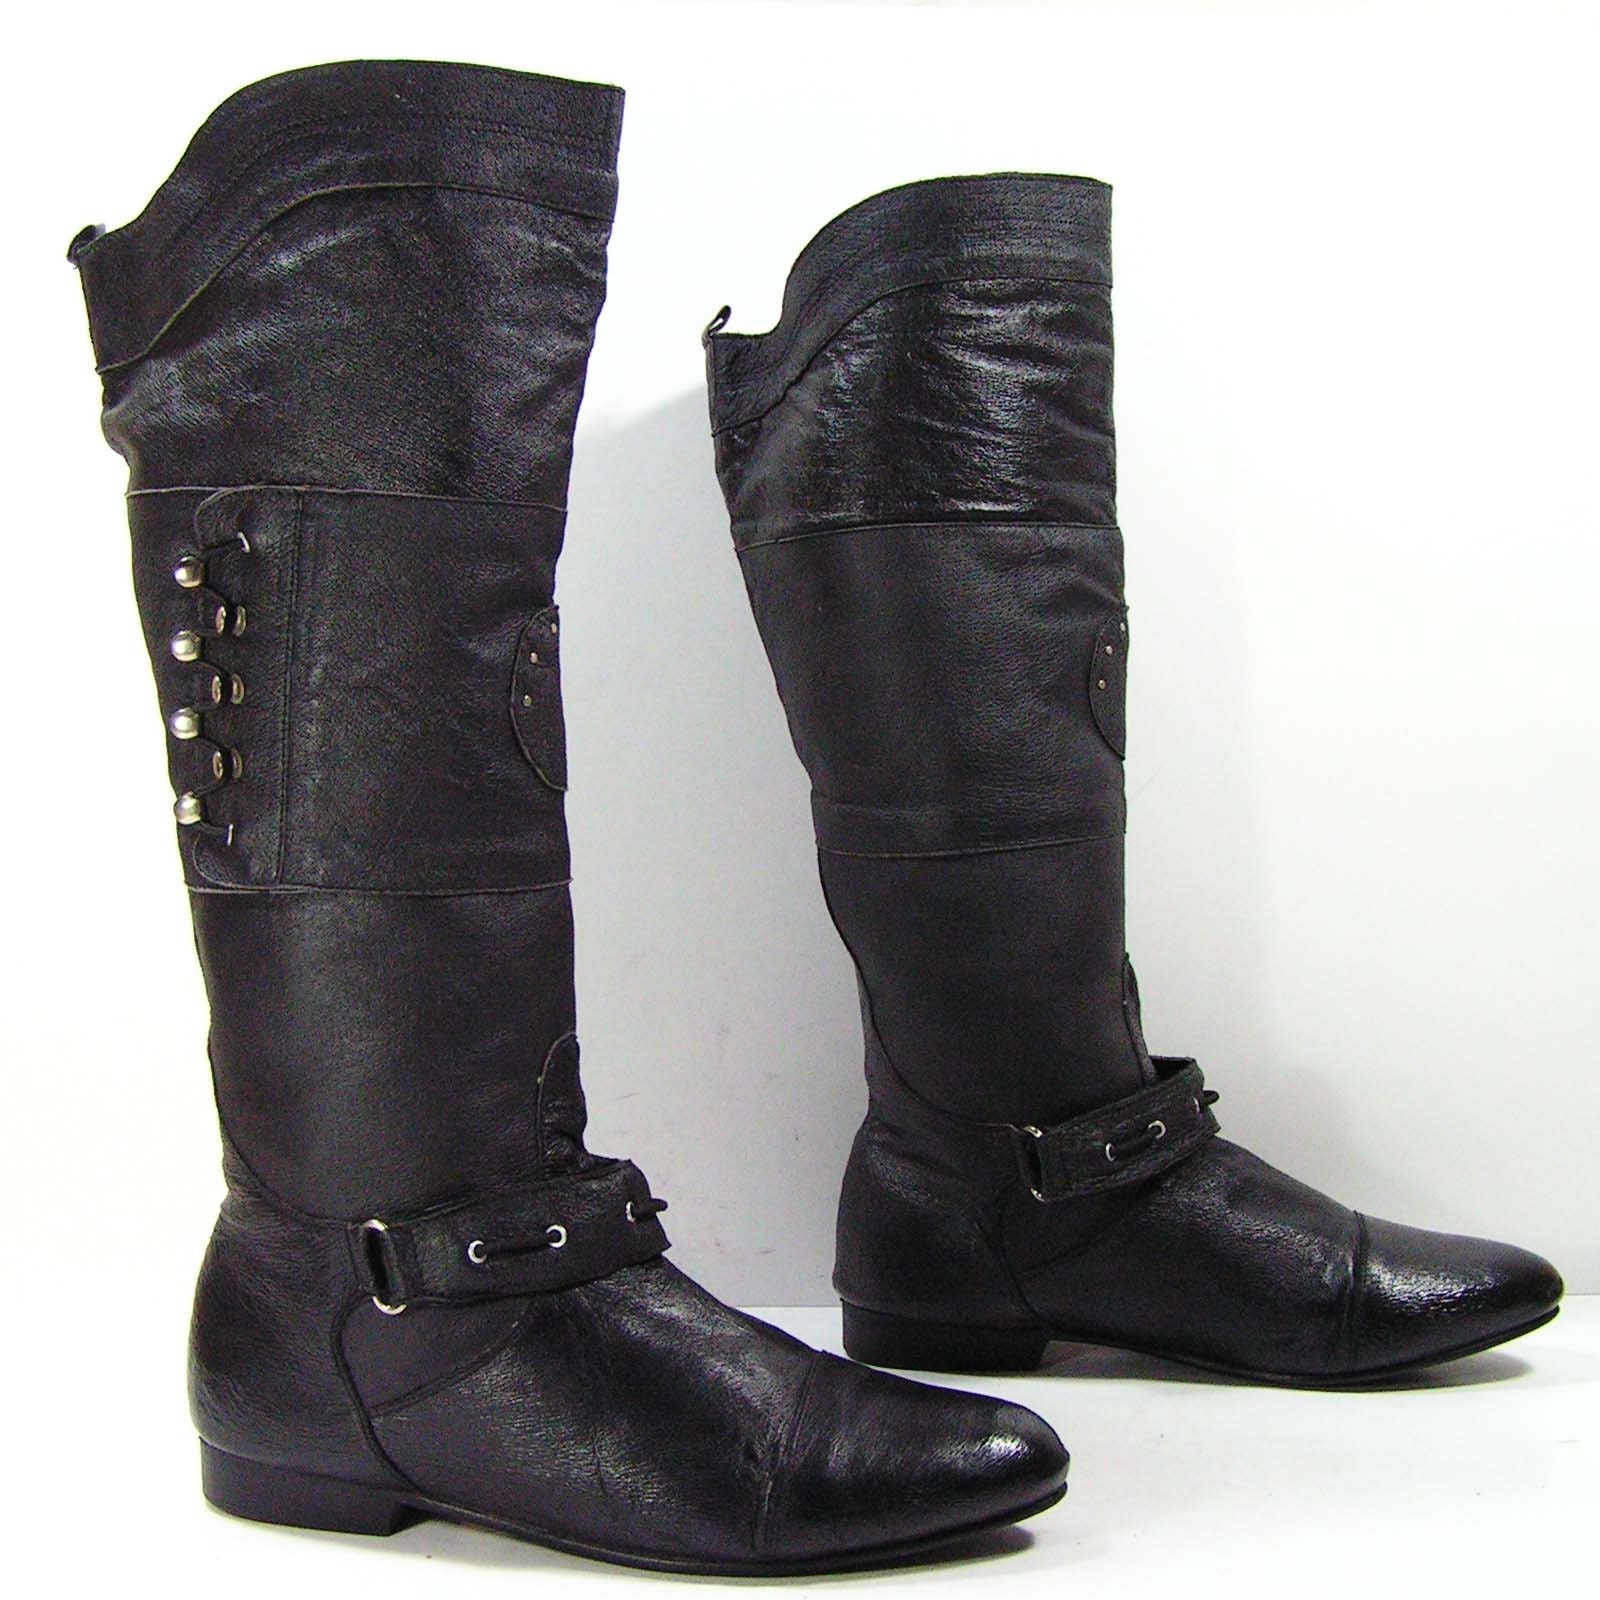 Wonderful Details About Pirate Boots For Women Adult Womens Pirate Costume Shoes